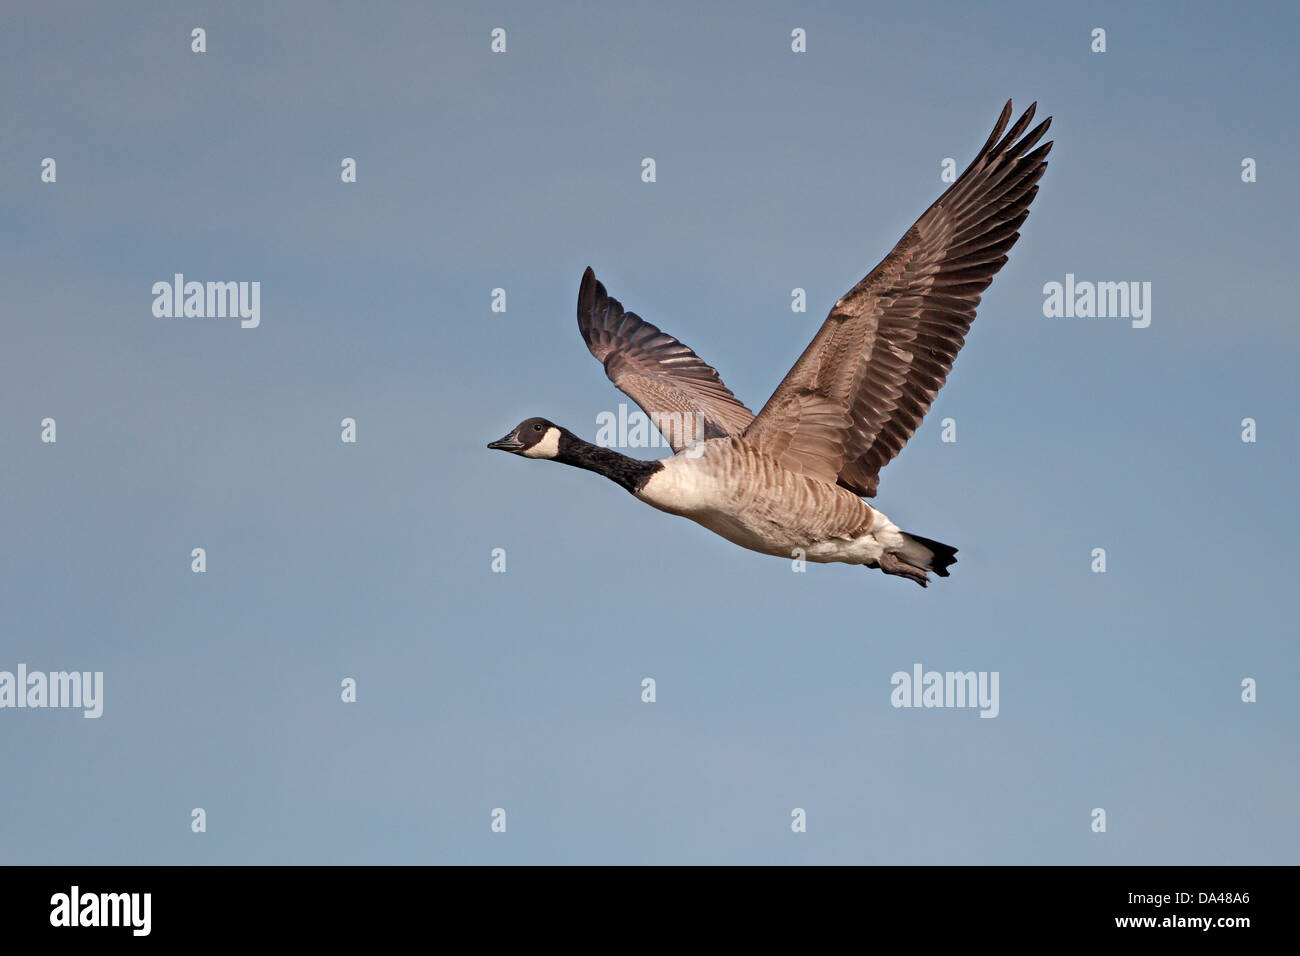 canada goose branta canadensis in flight dee estuary wirral uk stock photo royalty free. Black Bedroom Furniture Sets. Home Design Ideas